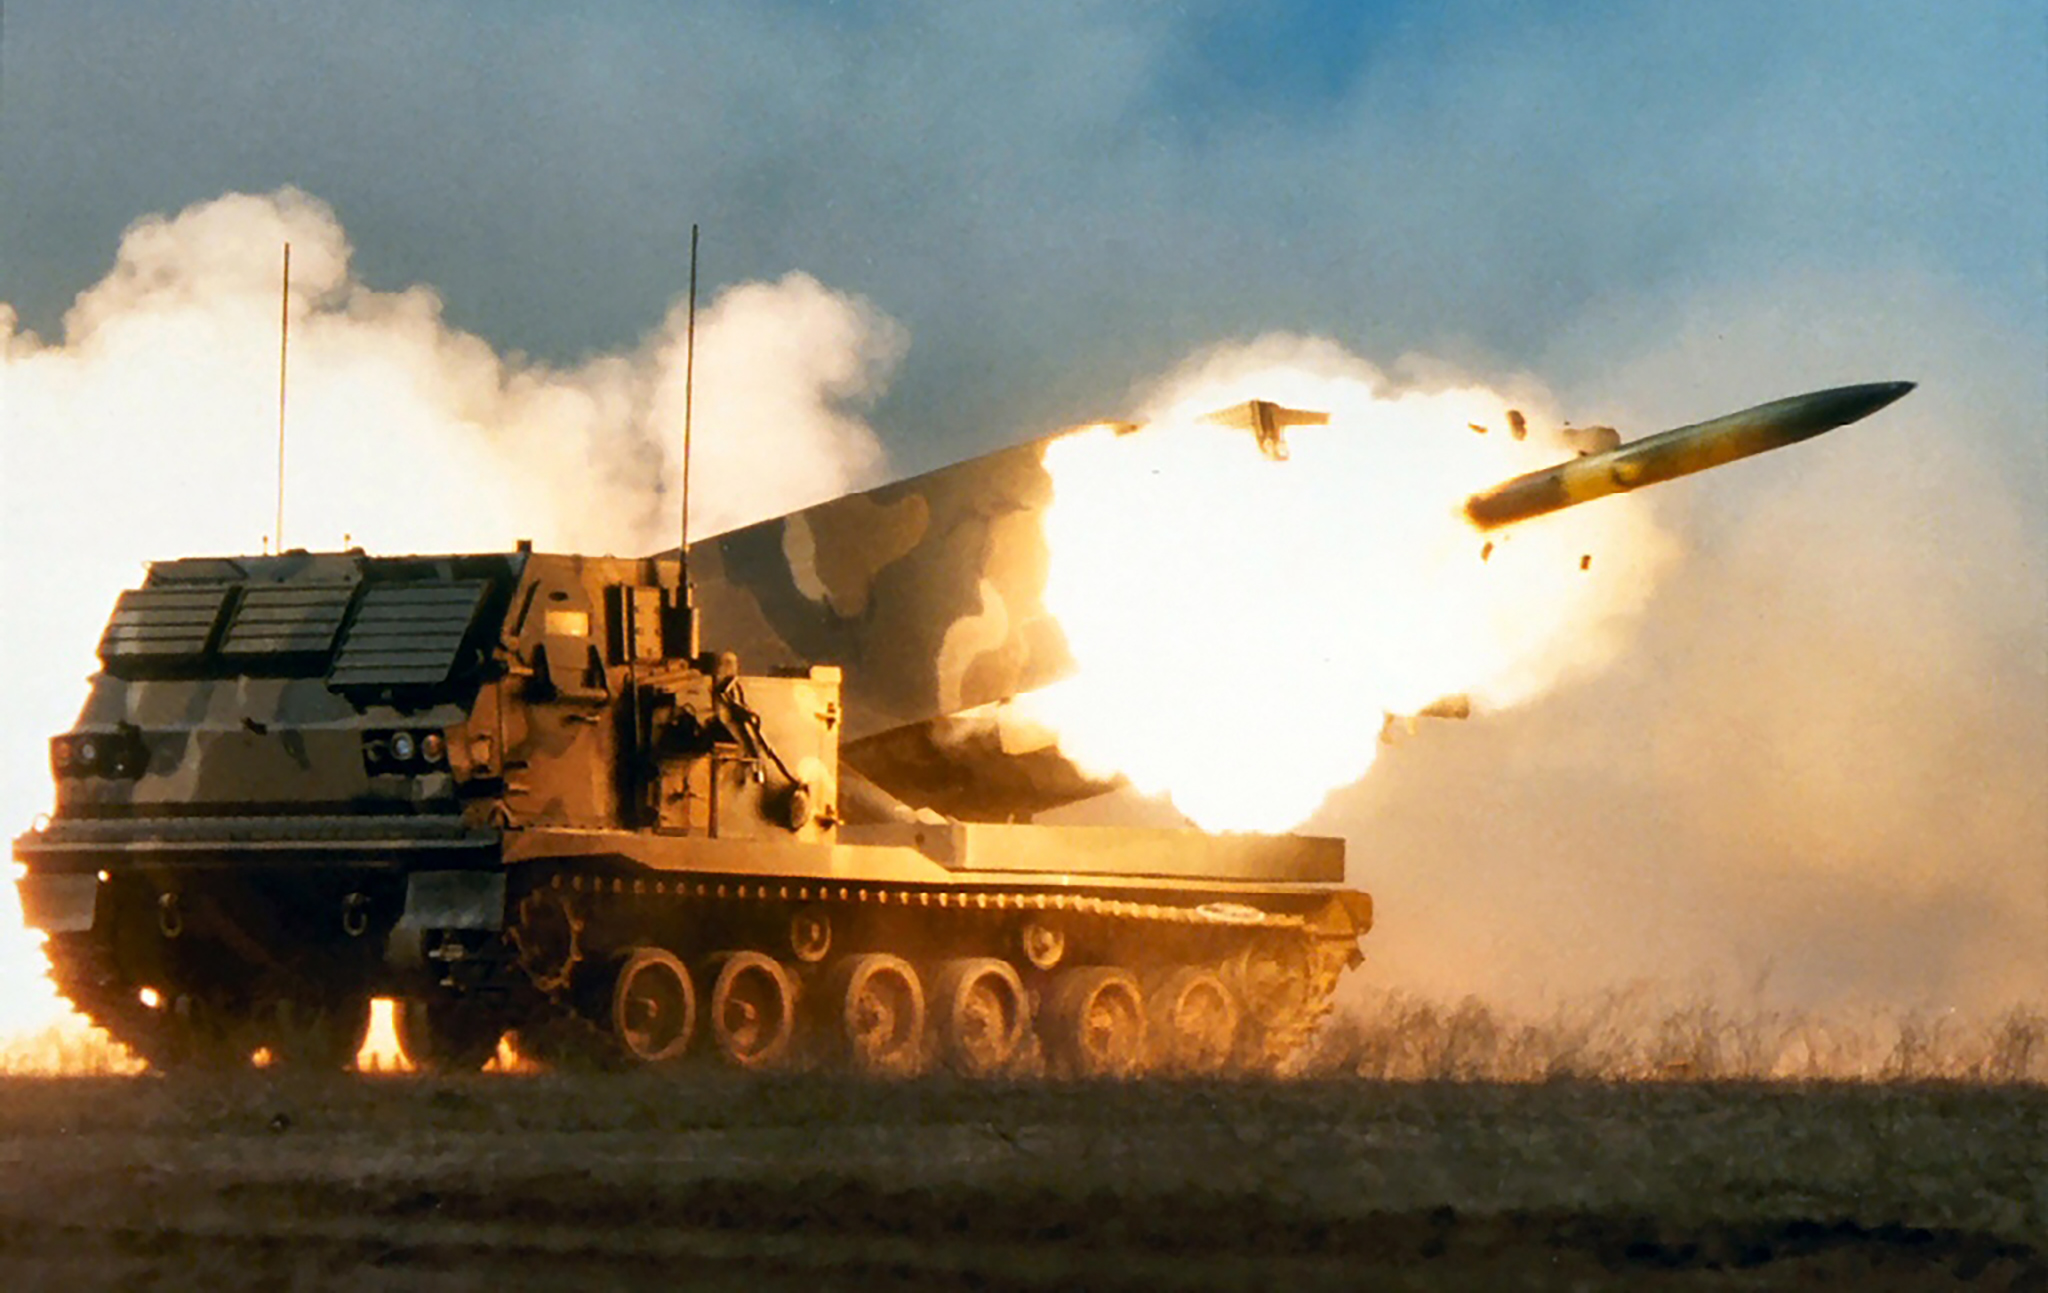 military_artillery_vehicles_rocket_desktop_1024x768_hd v2-wallpaper-890279.jpg